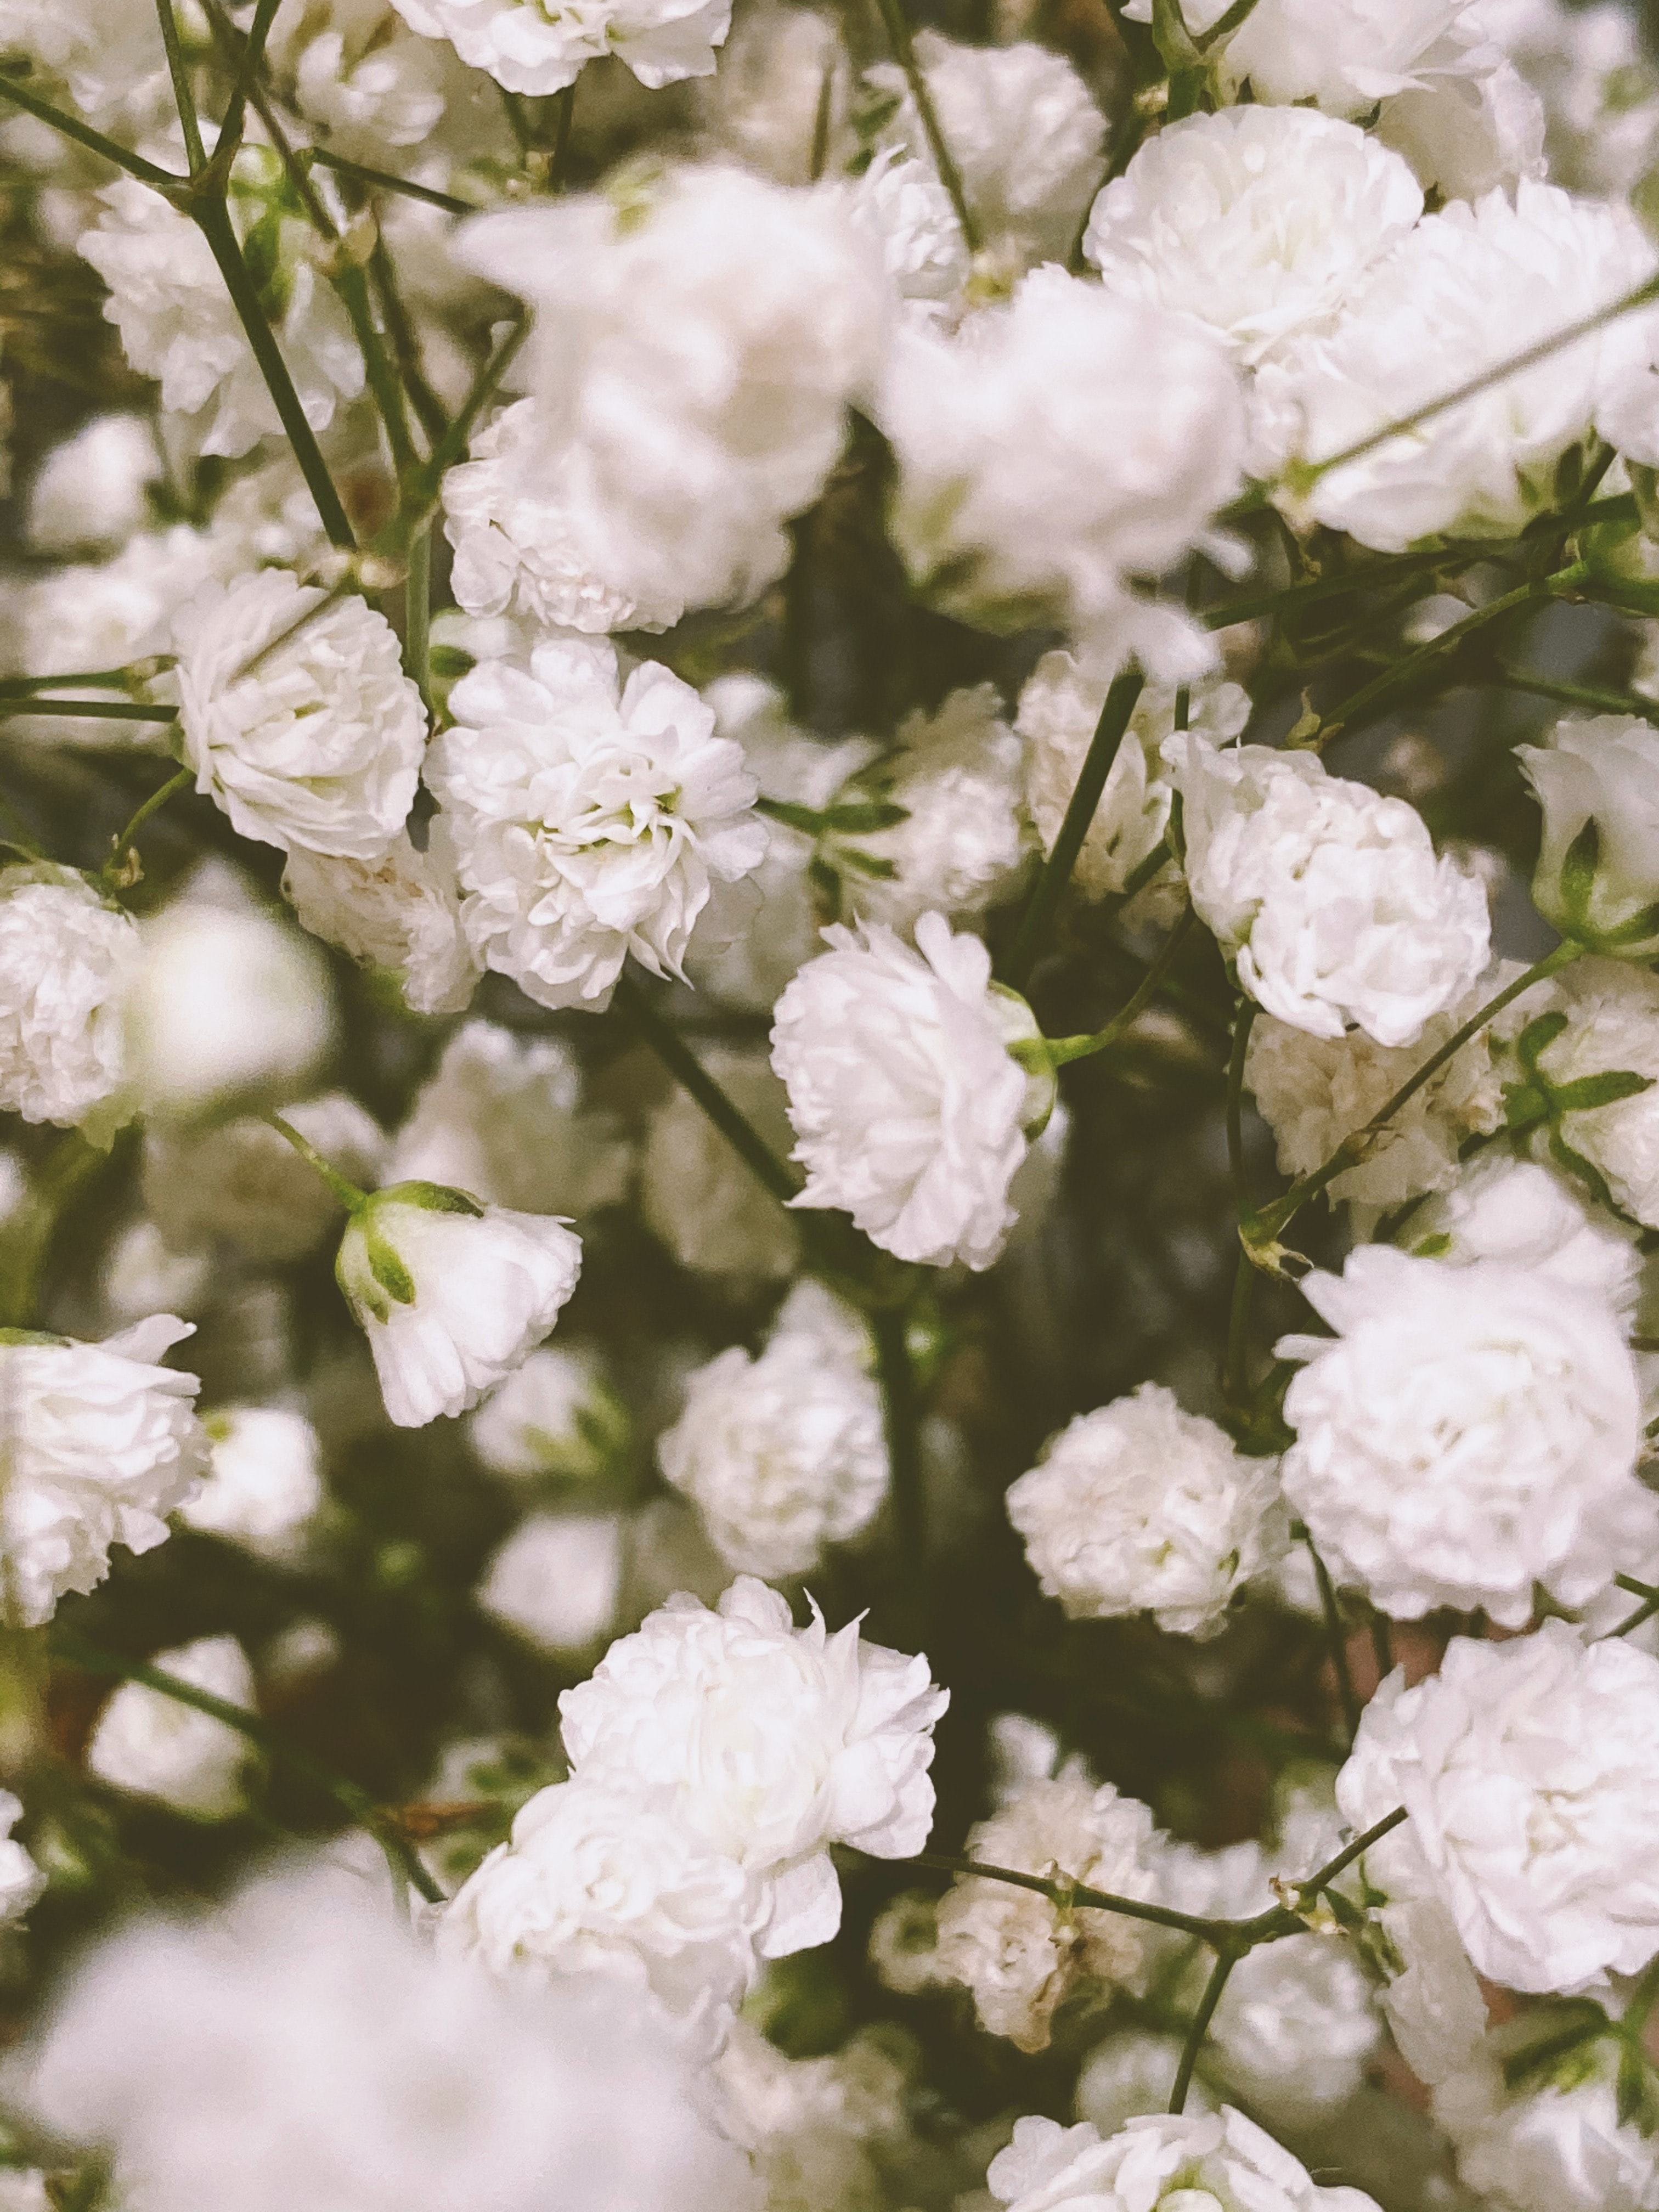 500 White Flowers Pictures Download Free Images On Unsplash